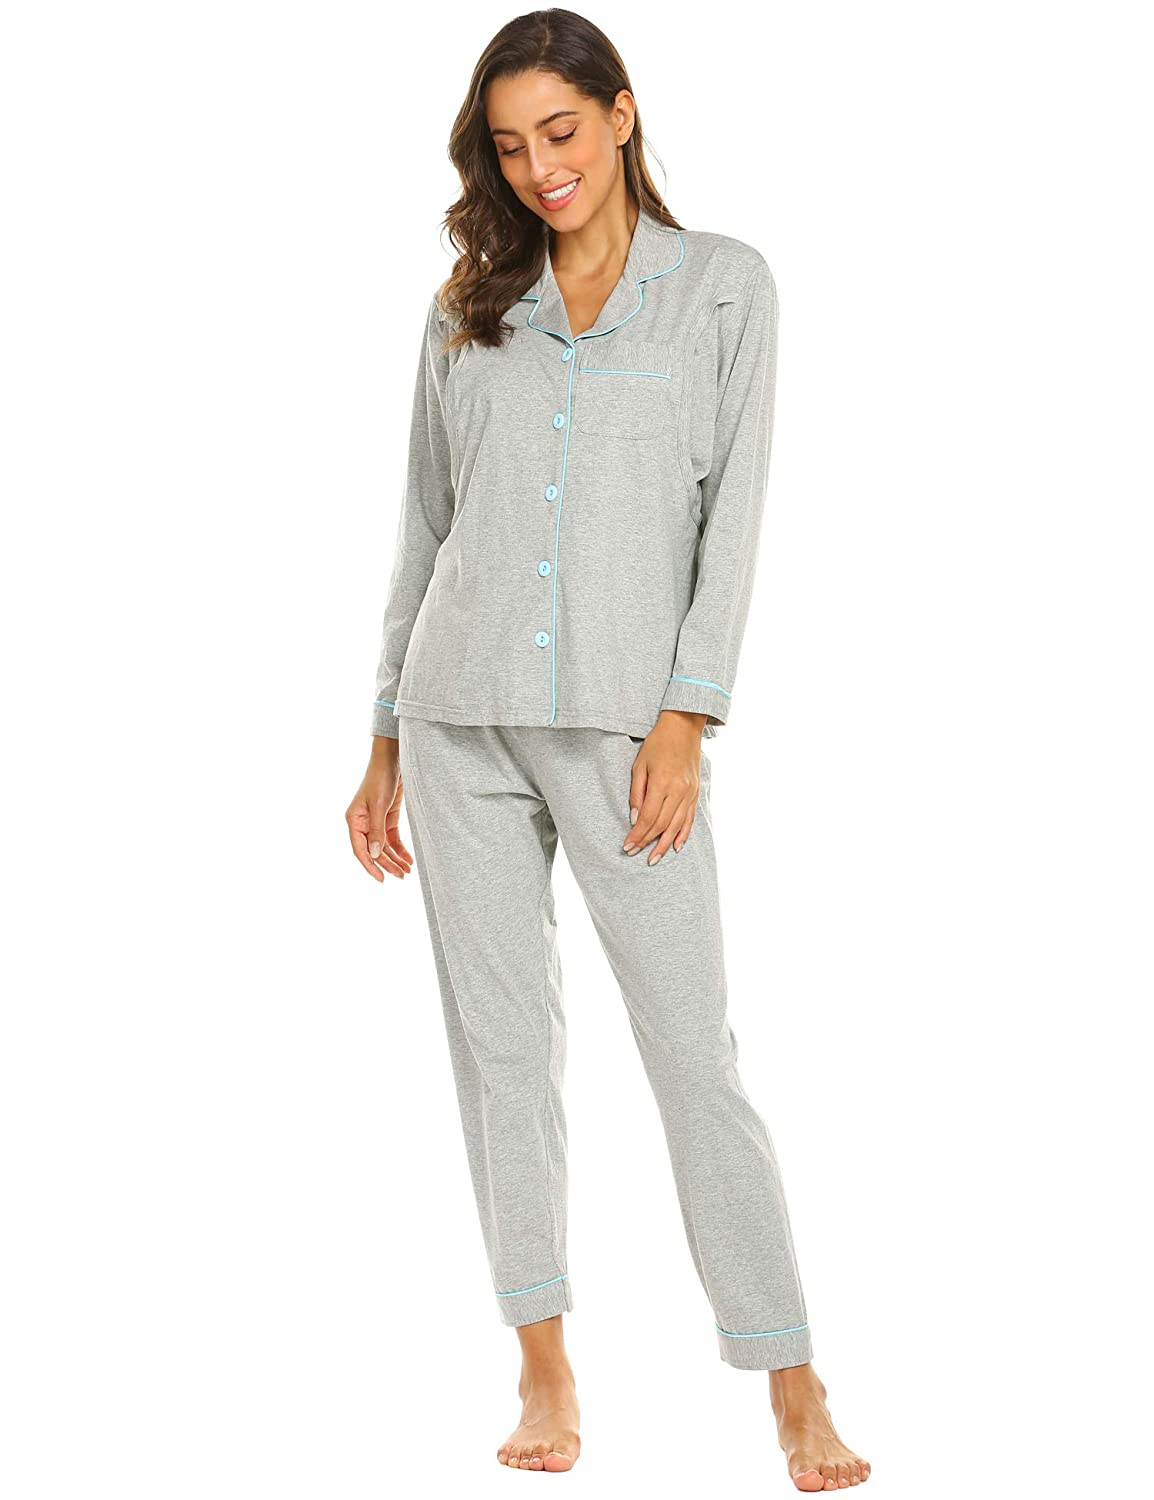 4ace74defdc 【IDEAL MATERNITY NURSING PAJAMAS】: Be made of high-quality fabric, our  nursing pajamas sleepwear is soft and breathable,The fabric is  machine-washable, ...